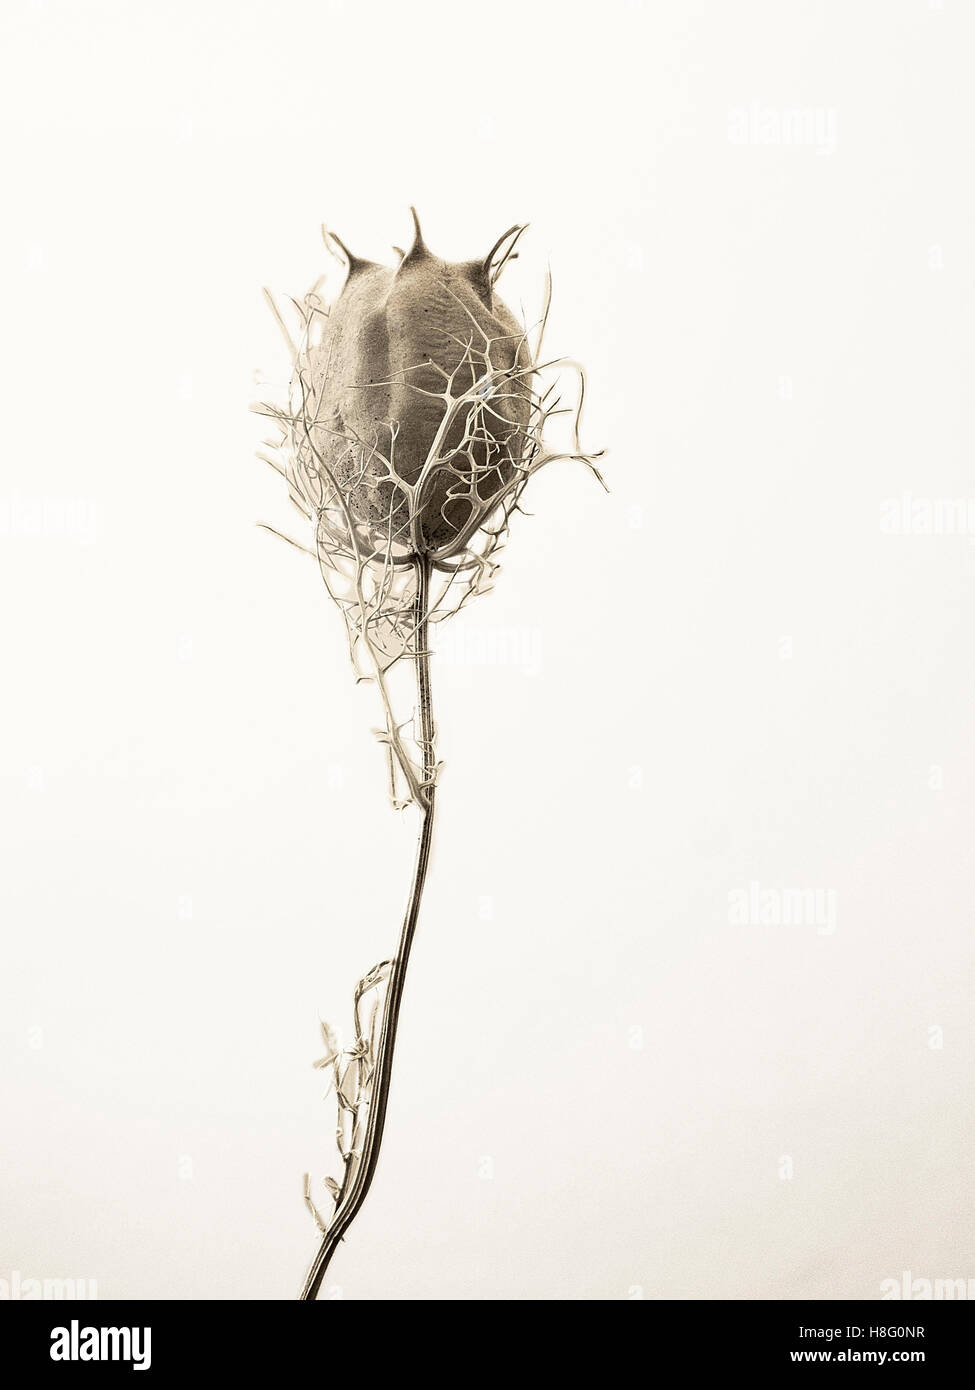 Aesthetic, dried plant in black and white, cut out in front of a neutral backround Stock Photo